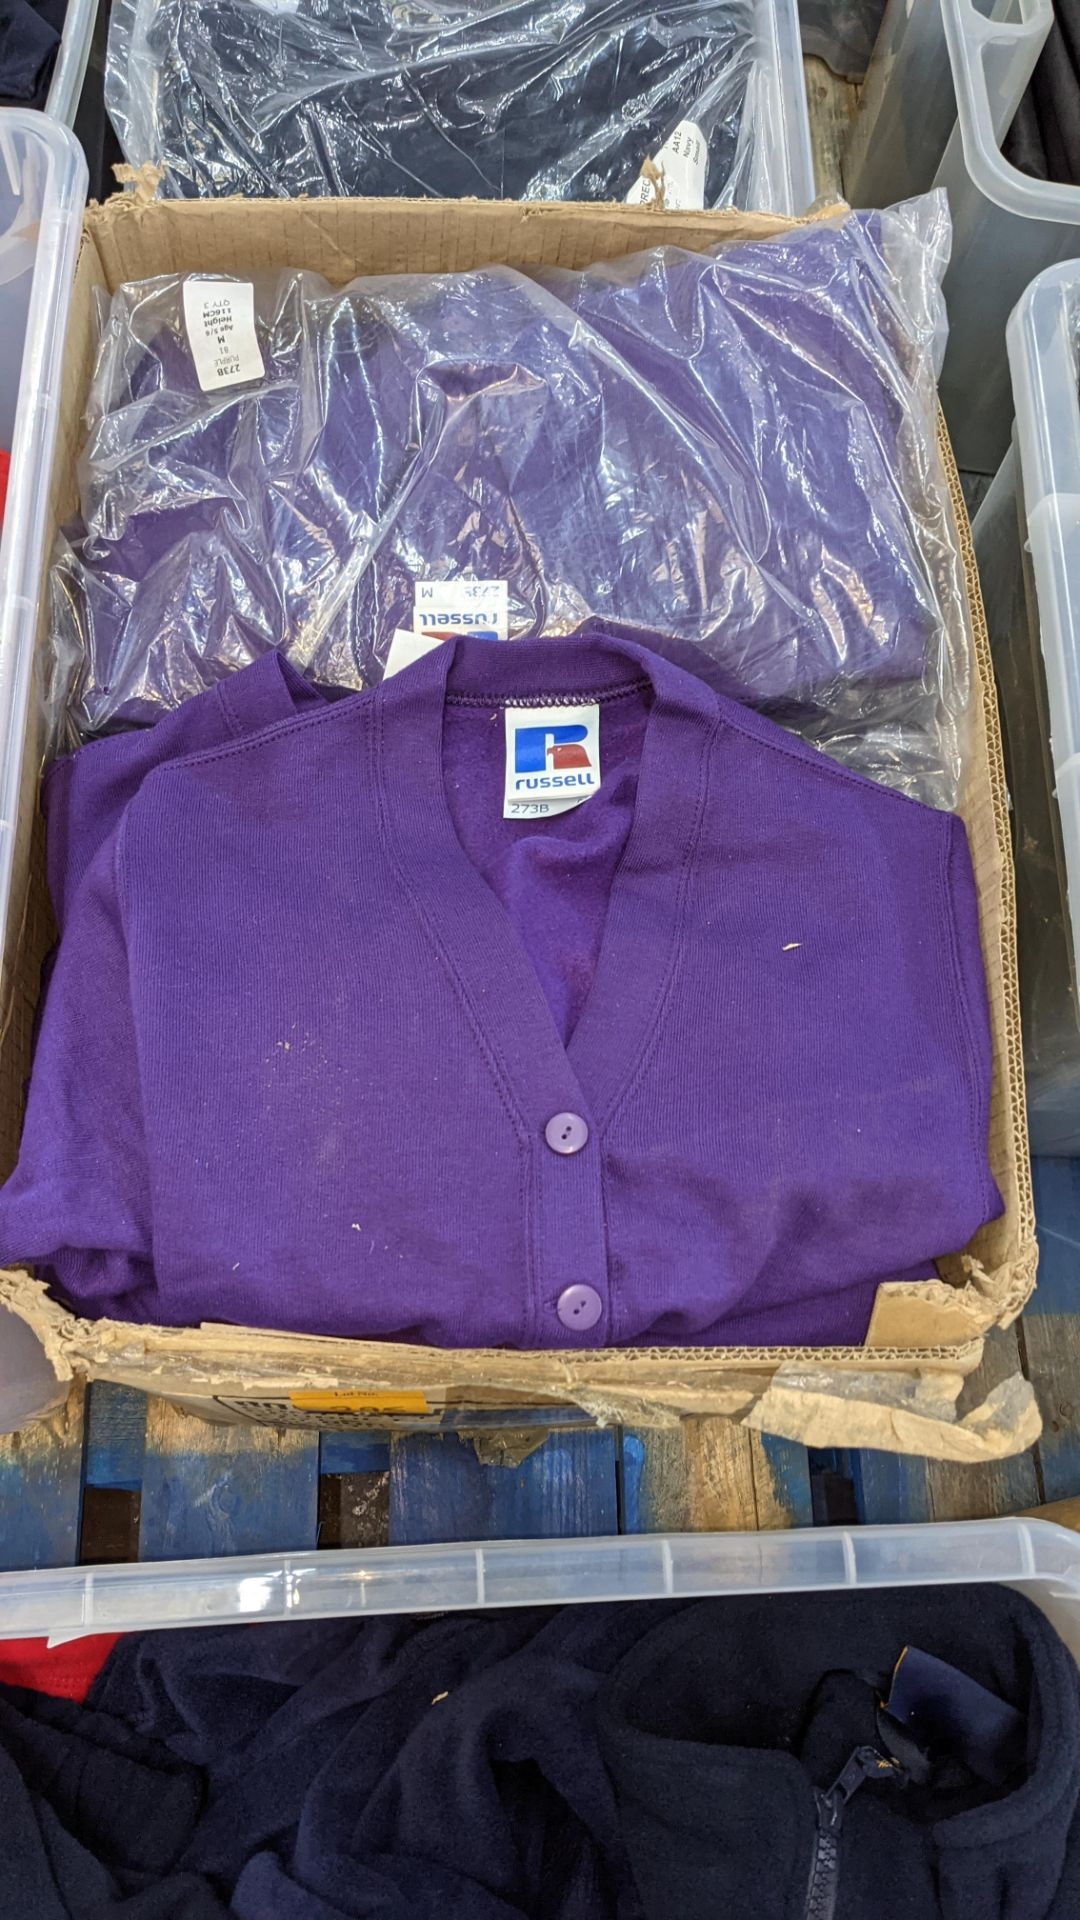 Quantity of Russell children's purple button up sweat tops - 1 large box - Image 2 of 4